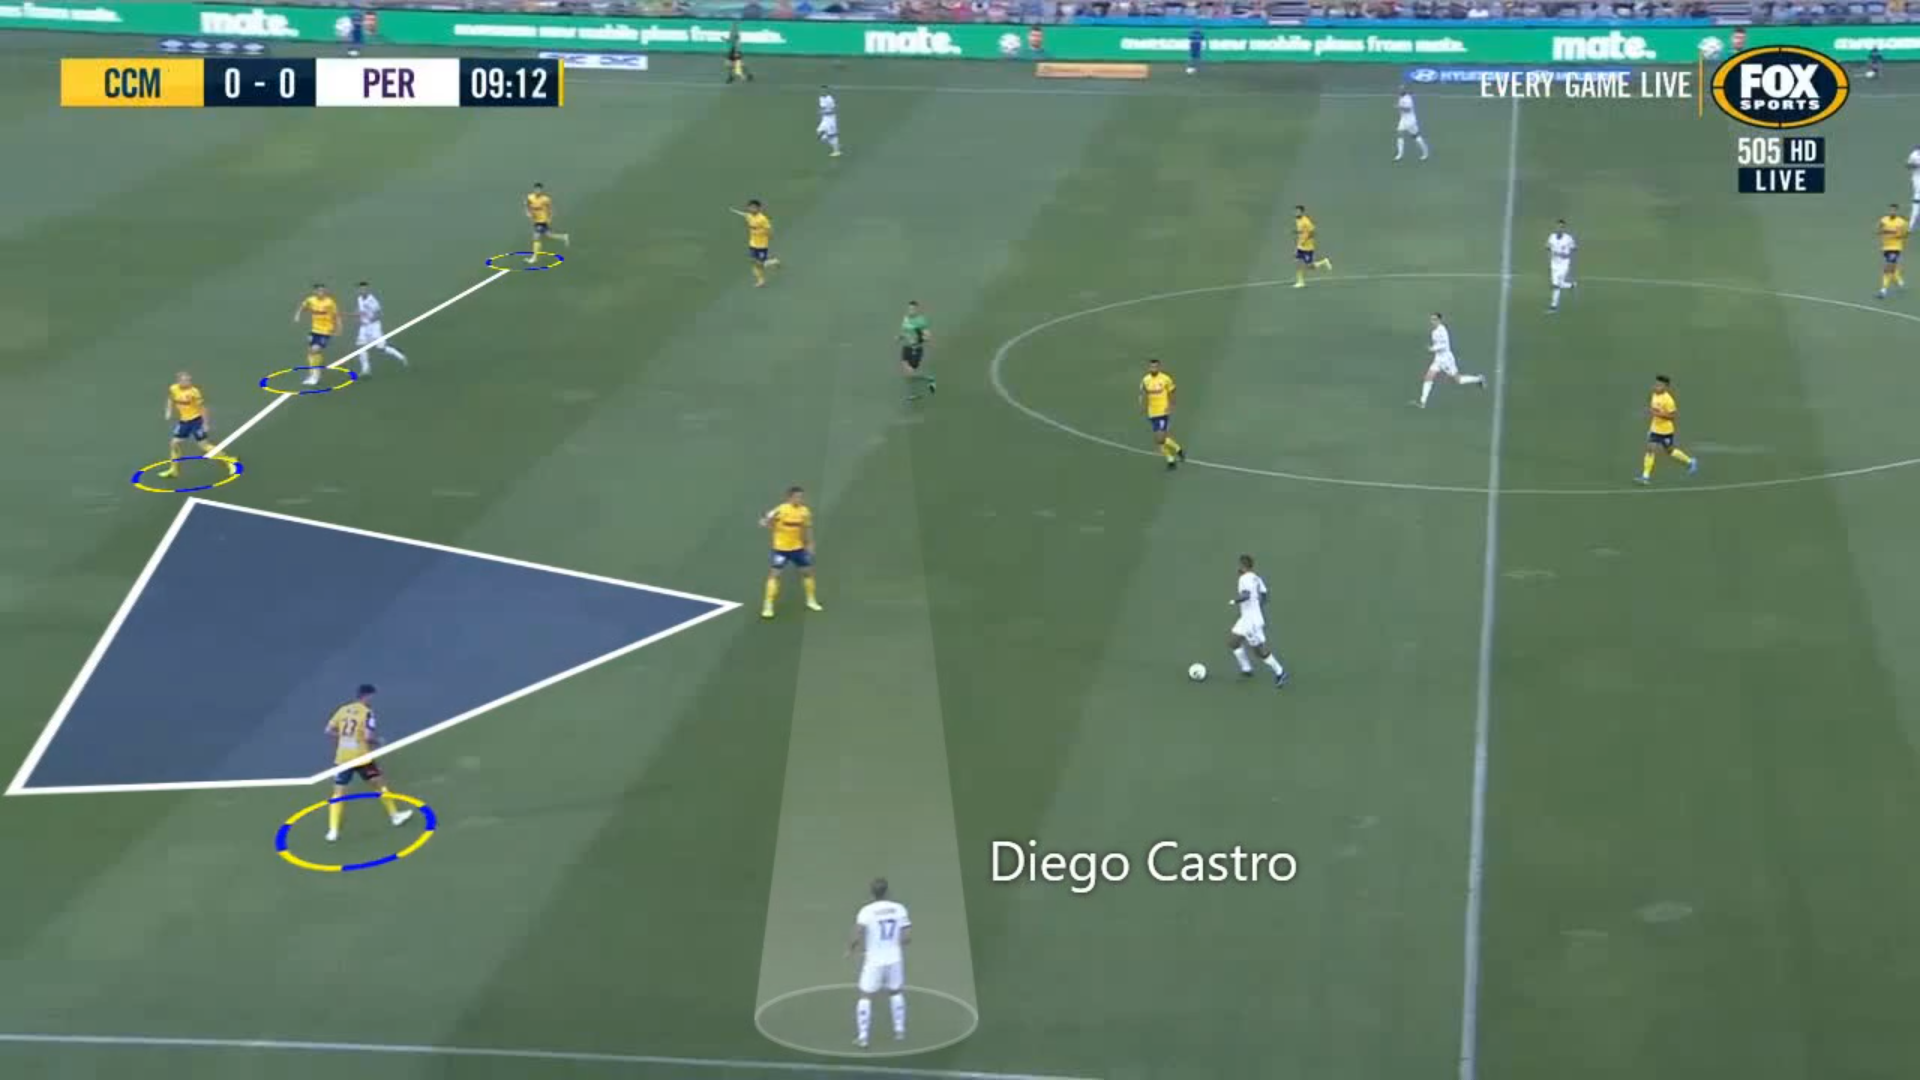 Diego Castro 2019/20 – Scout report - tactical analysis tactics